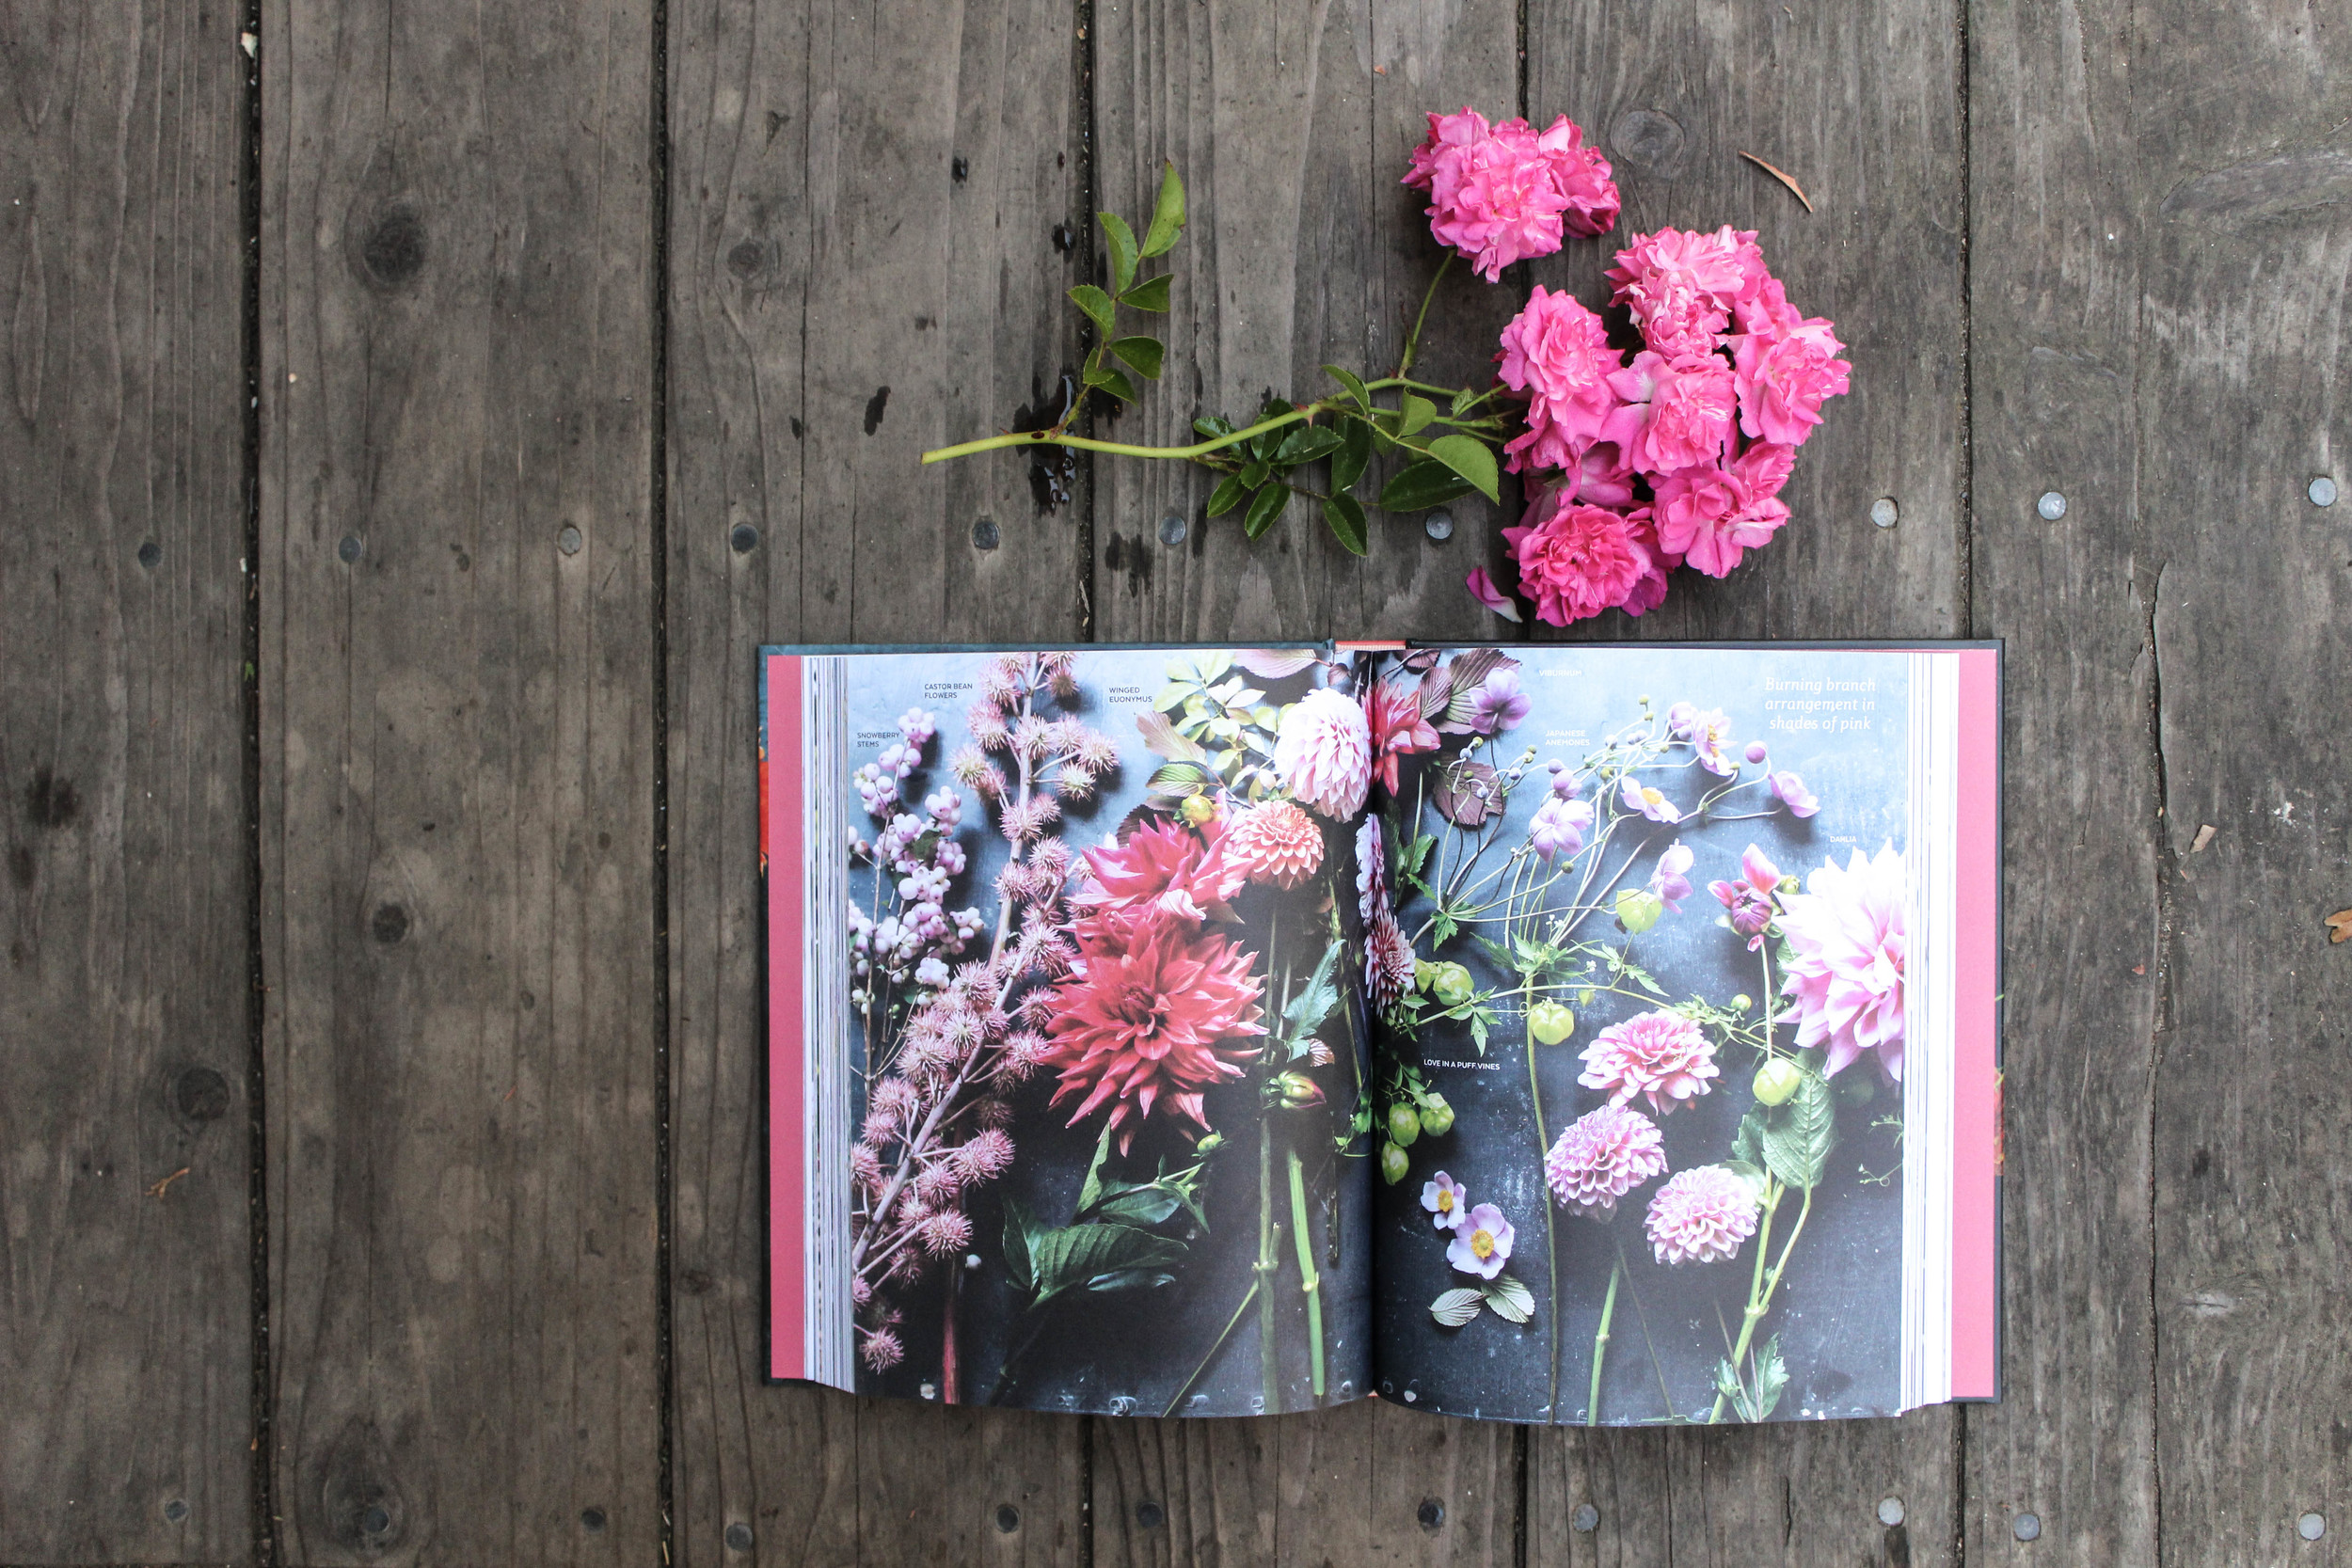 the flower workbook